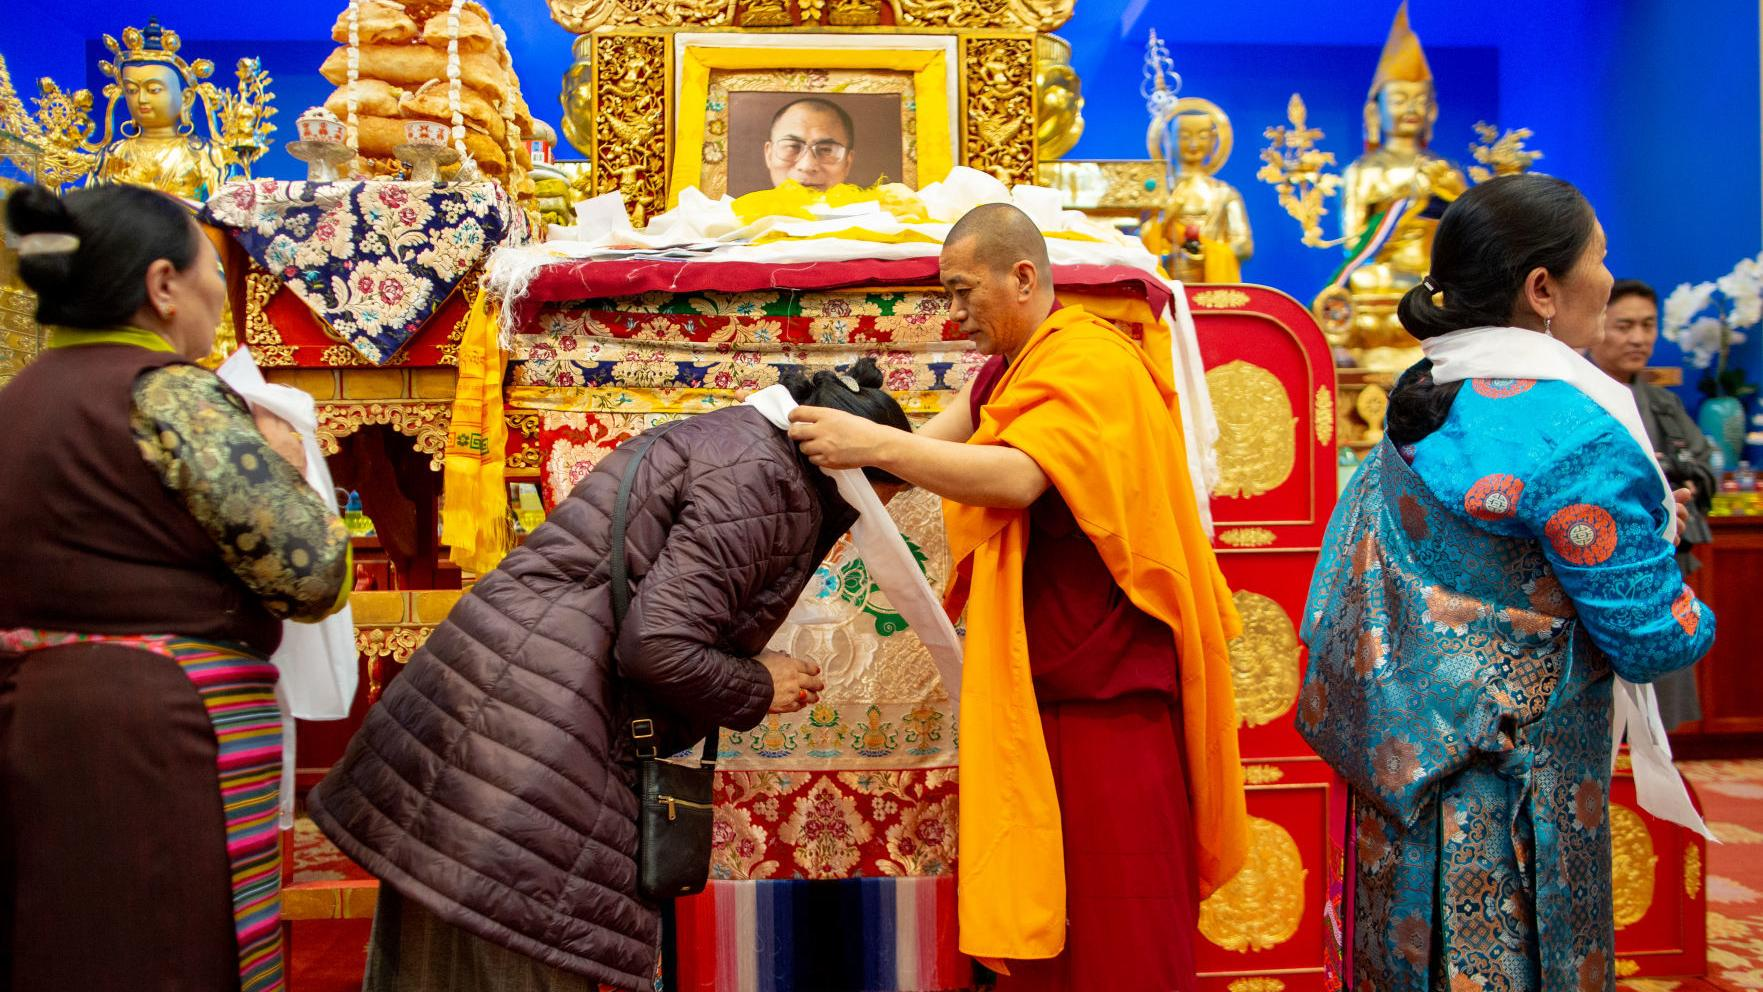 Scenes from a Tibetan New Year celebration